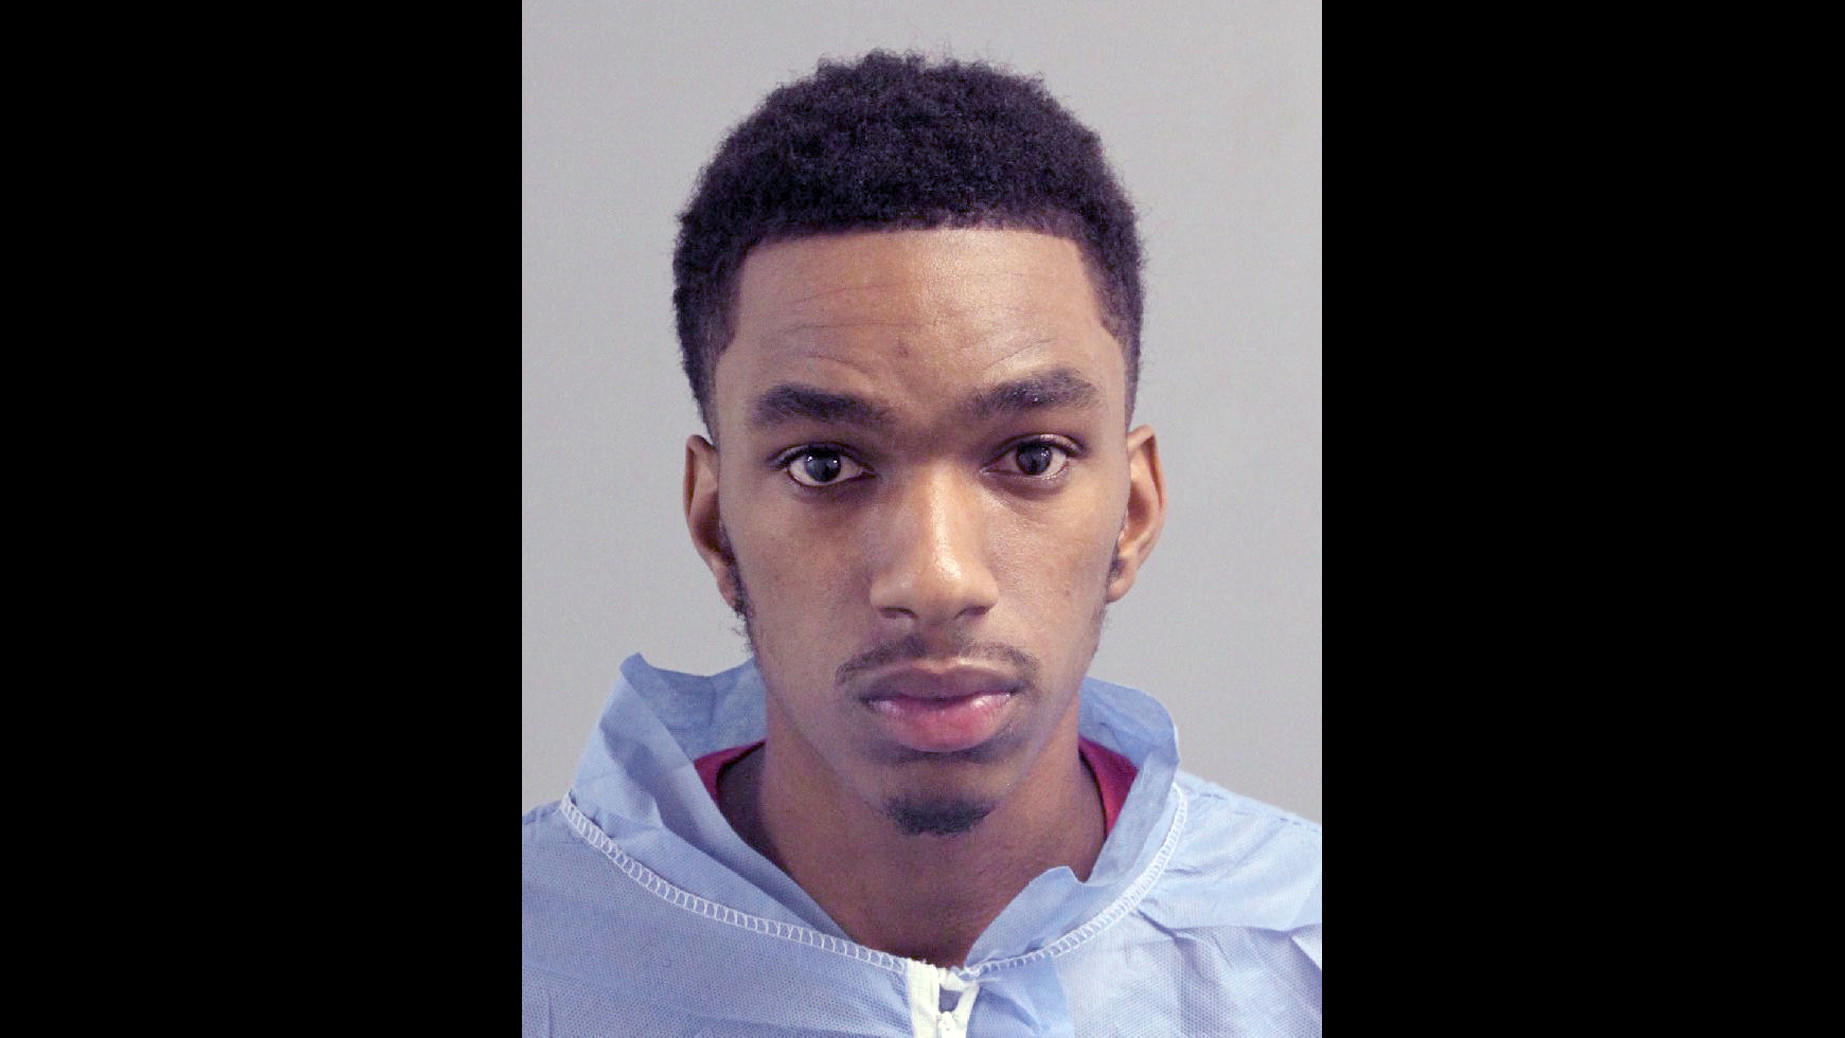 Anne Arundel police make arrest for April convenience store robbery in Lothian